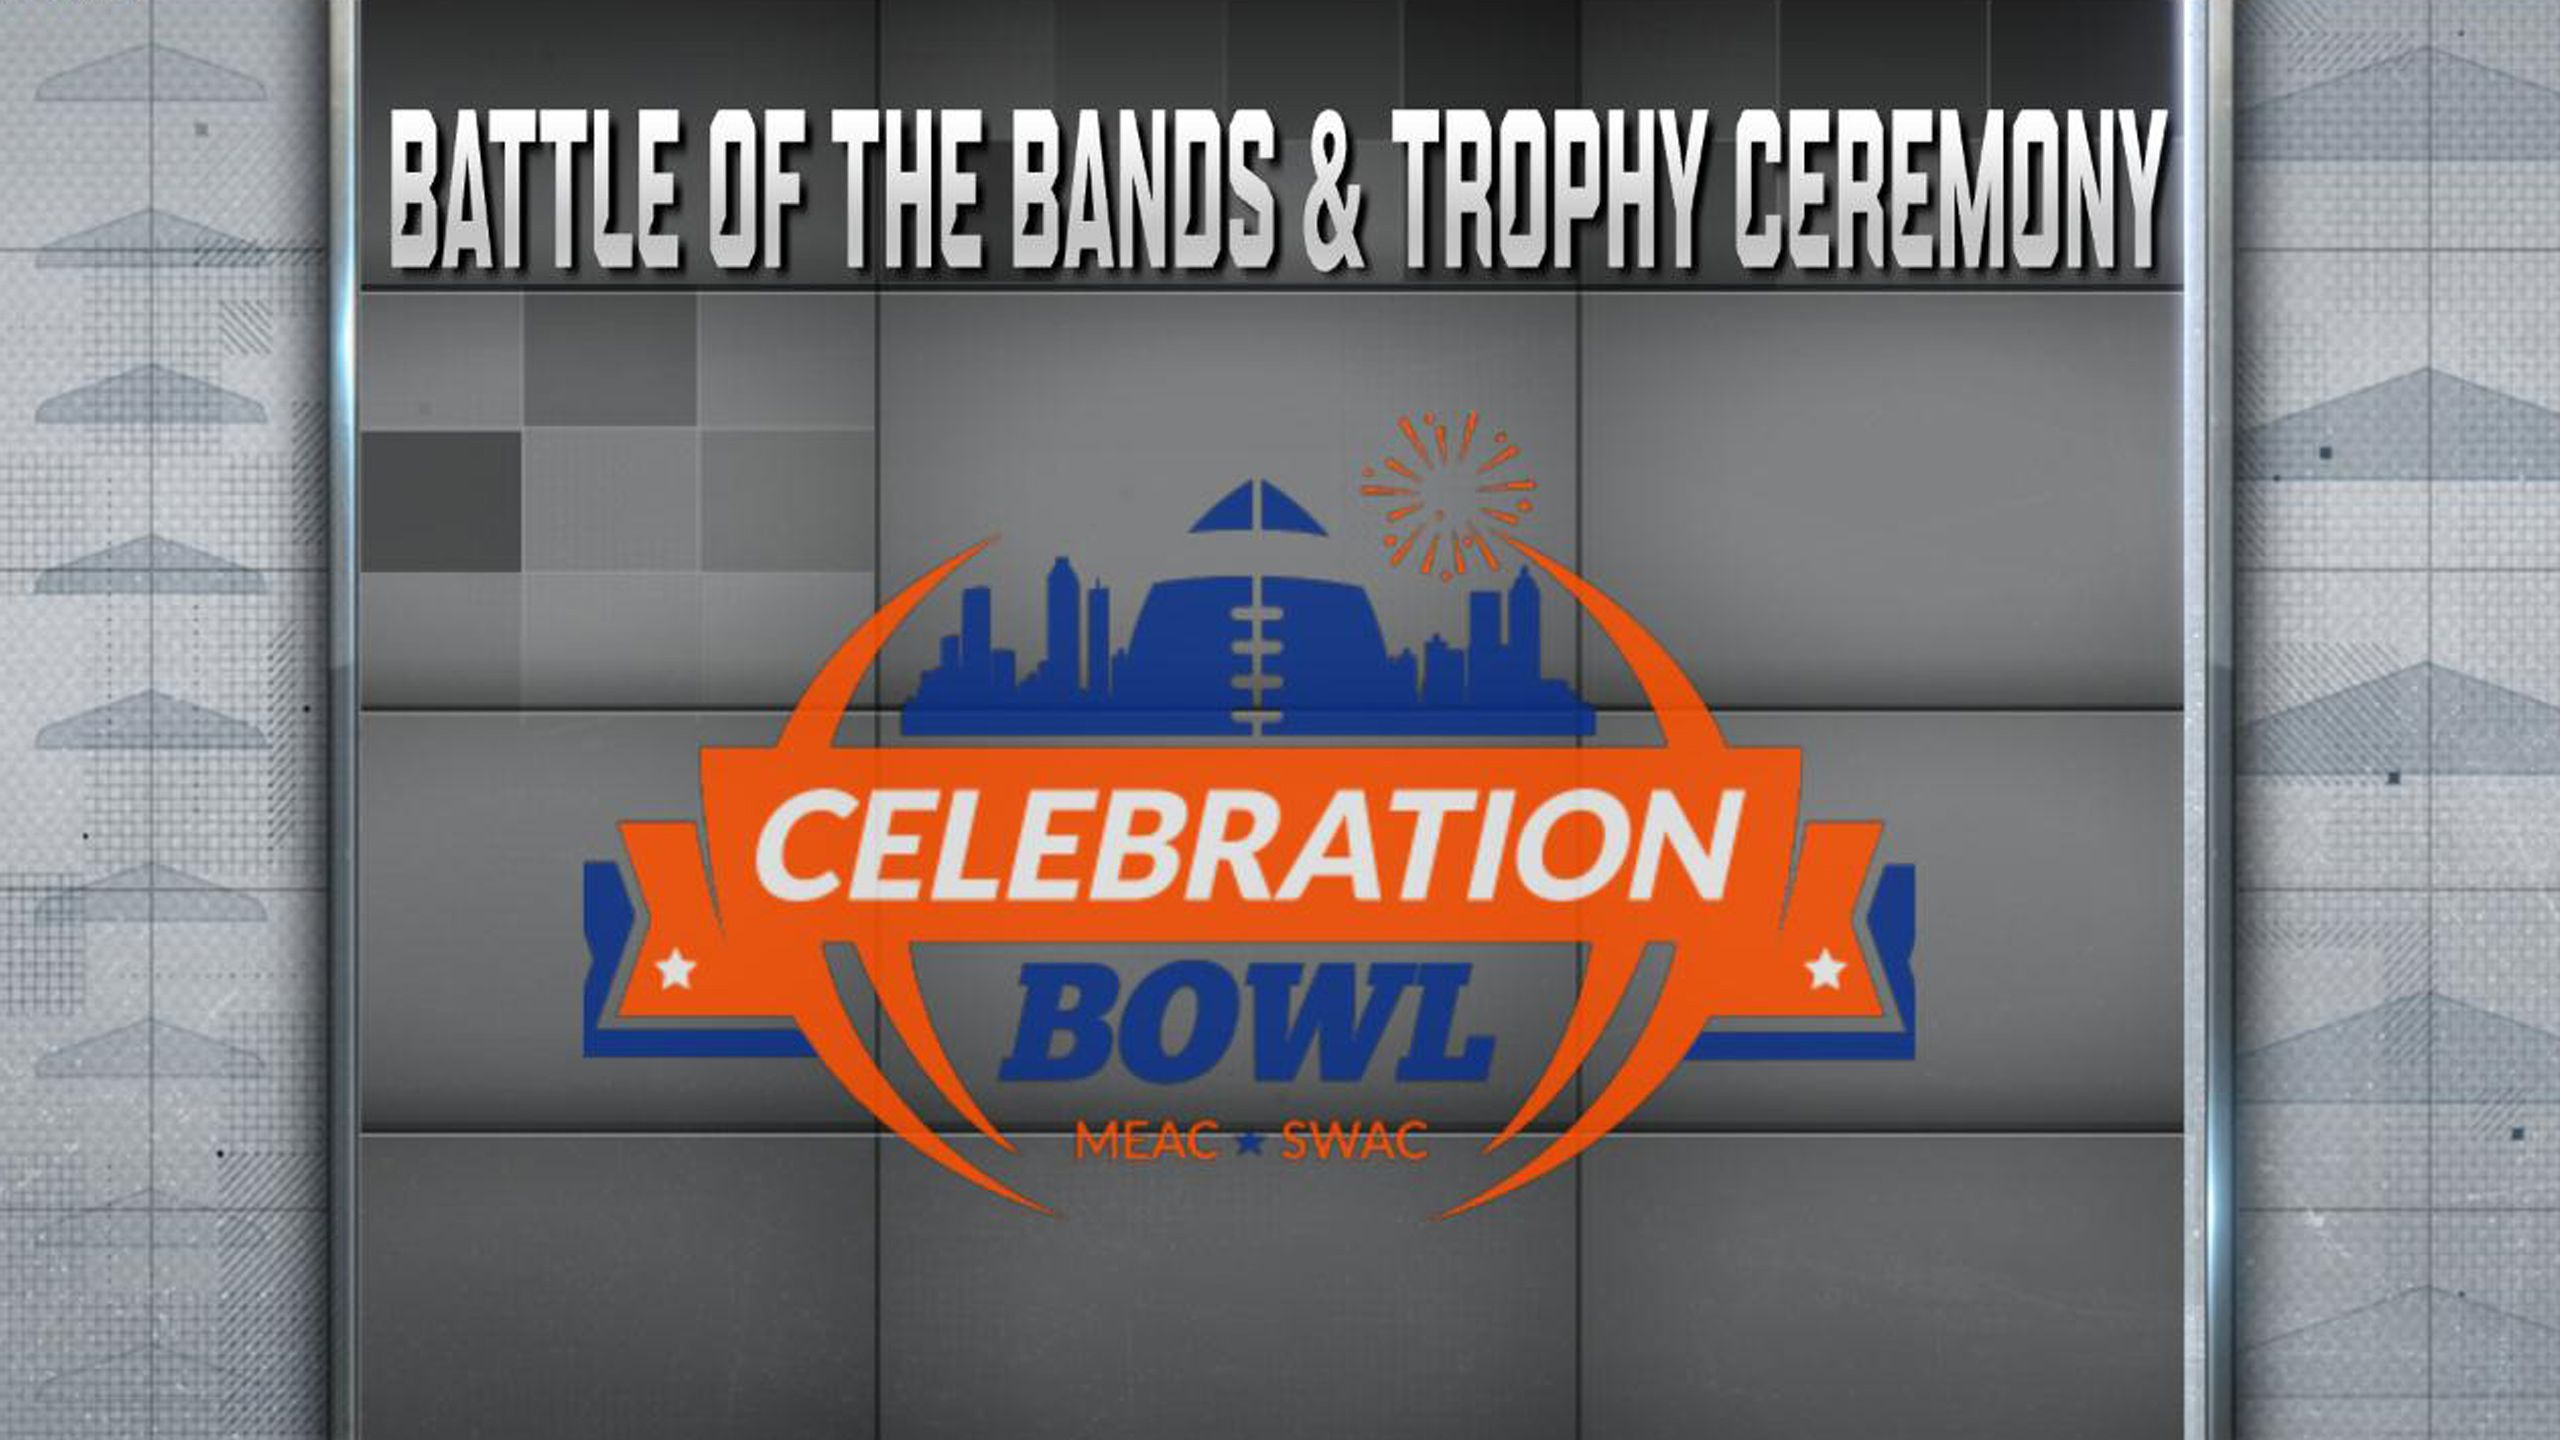 Celebration Bowl Battle of the Bands and Trophy Ceremony Presented by Capital One